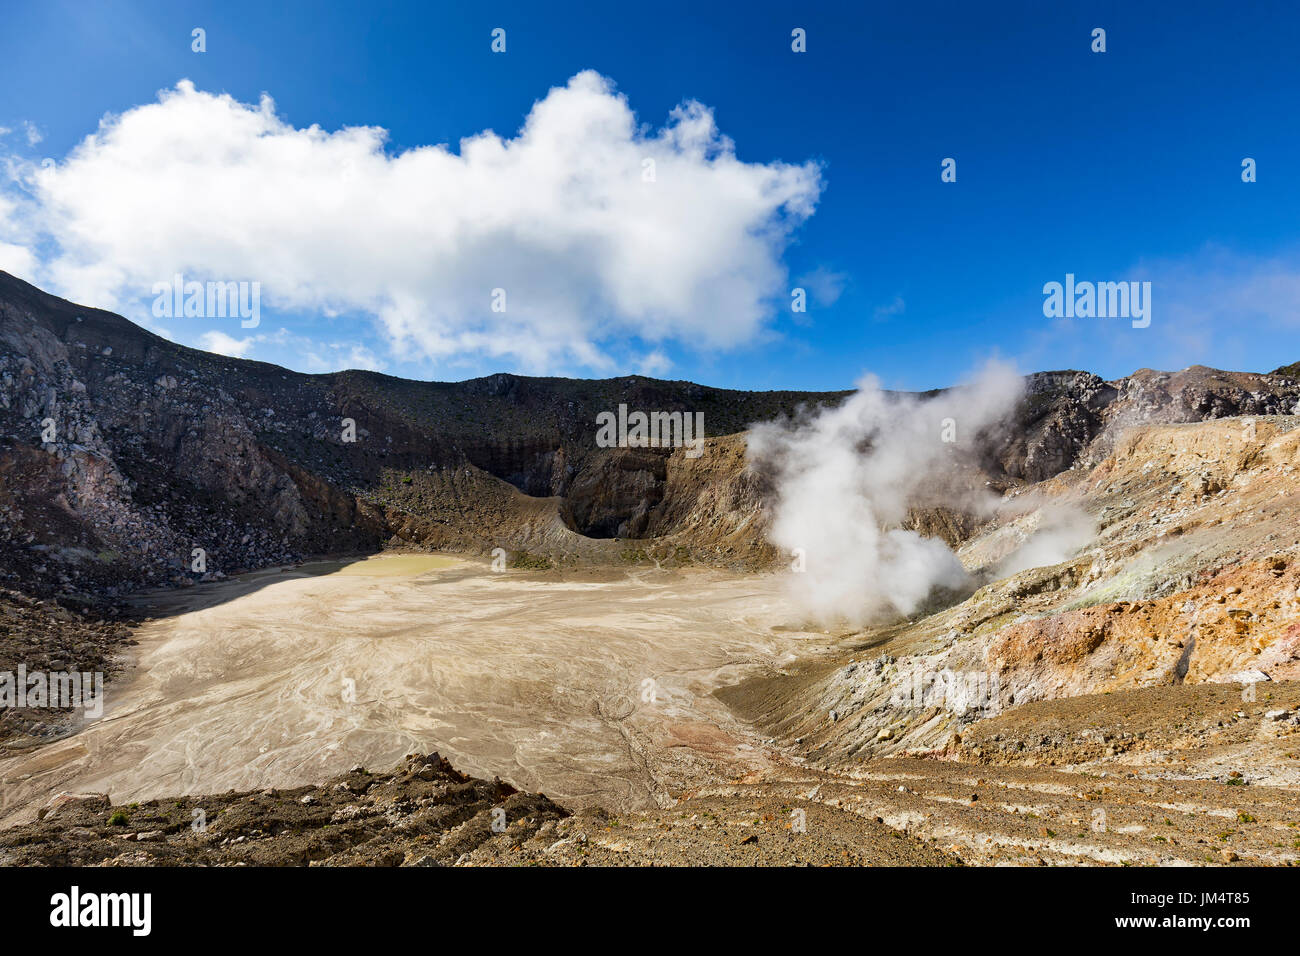 An active sulfur vent spits gasses inside the stratovolcano, Mount Egon in East Nusa Tenggara in Indonesia. - Stock Image